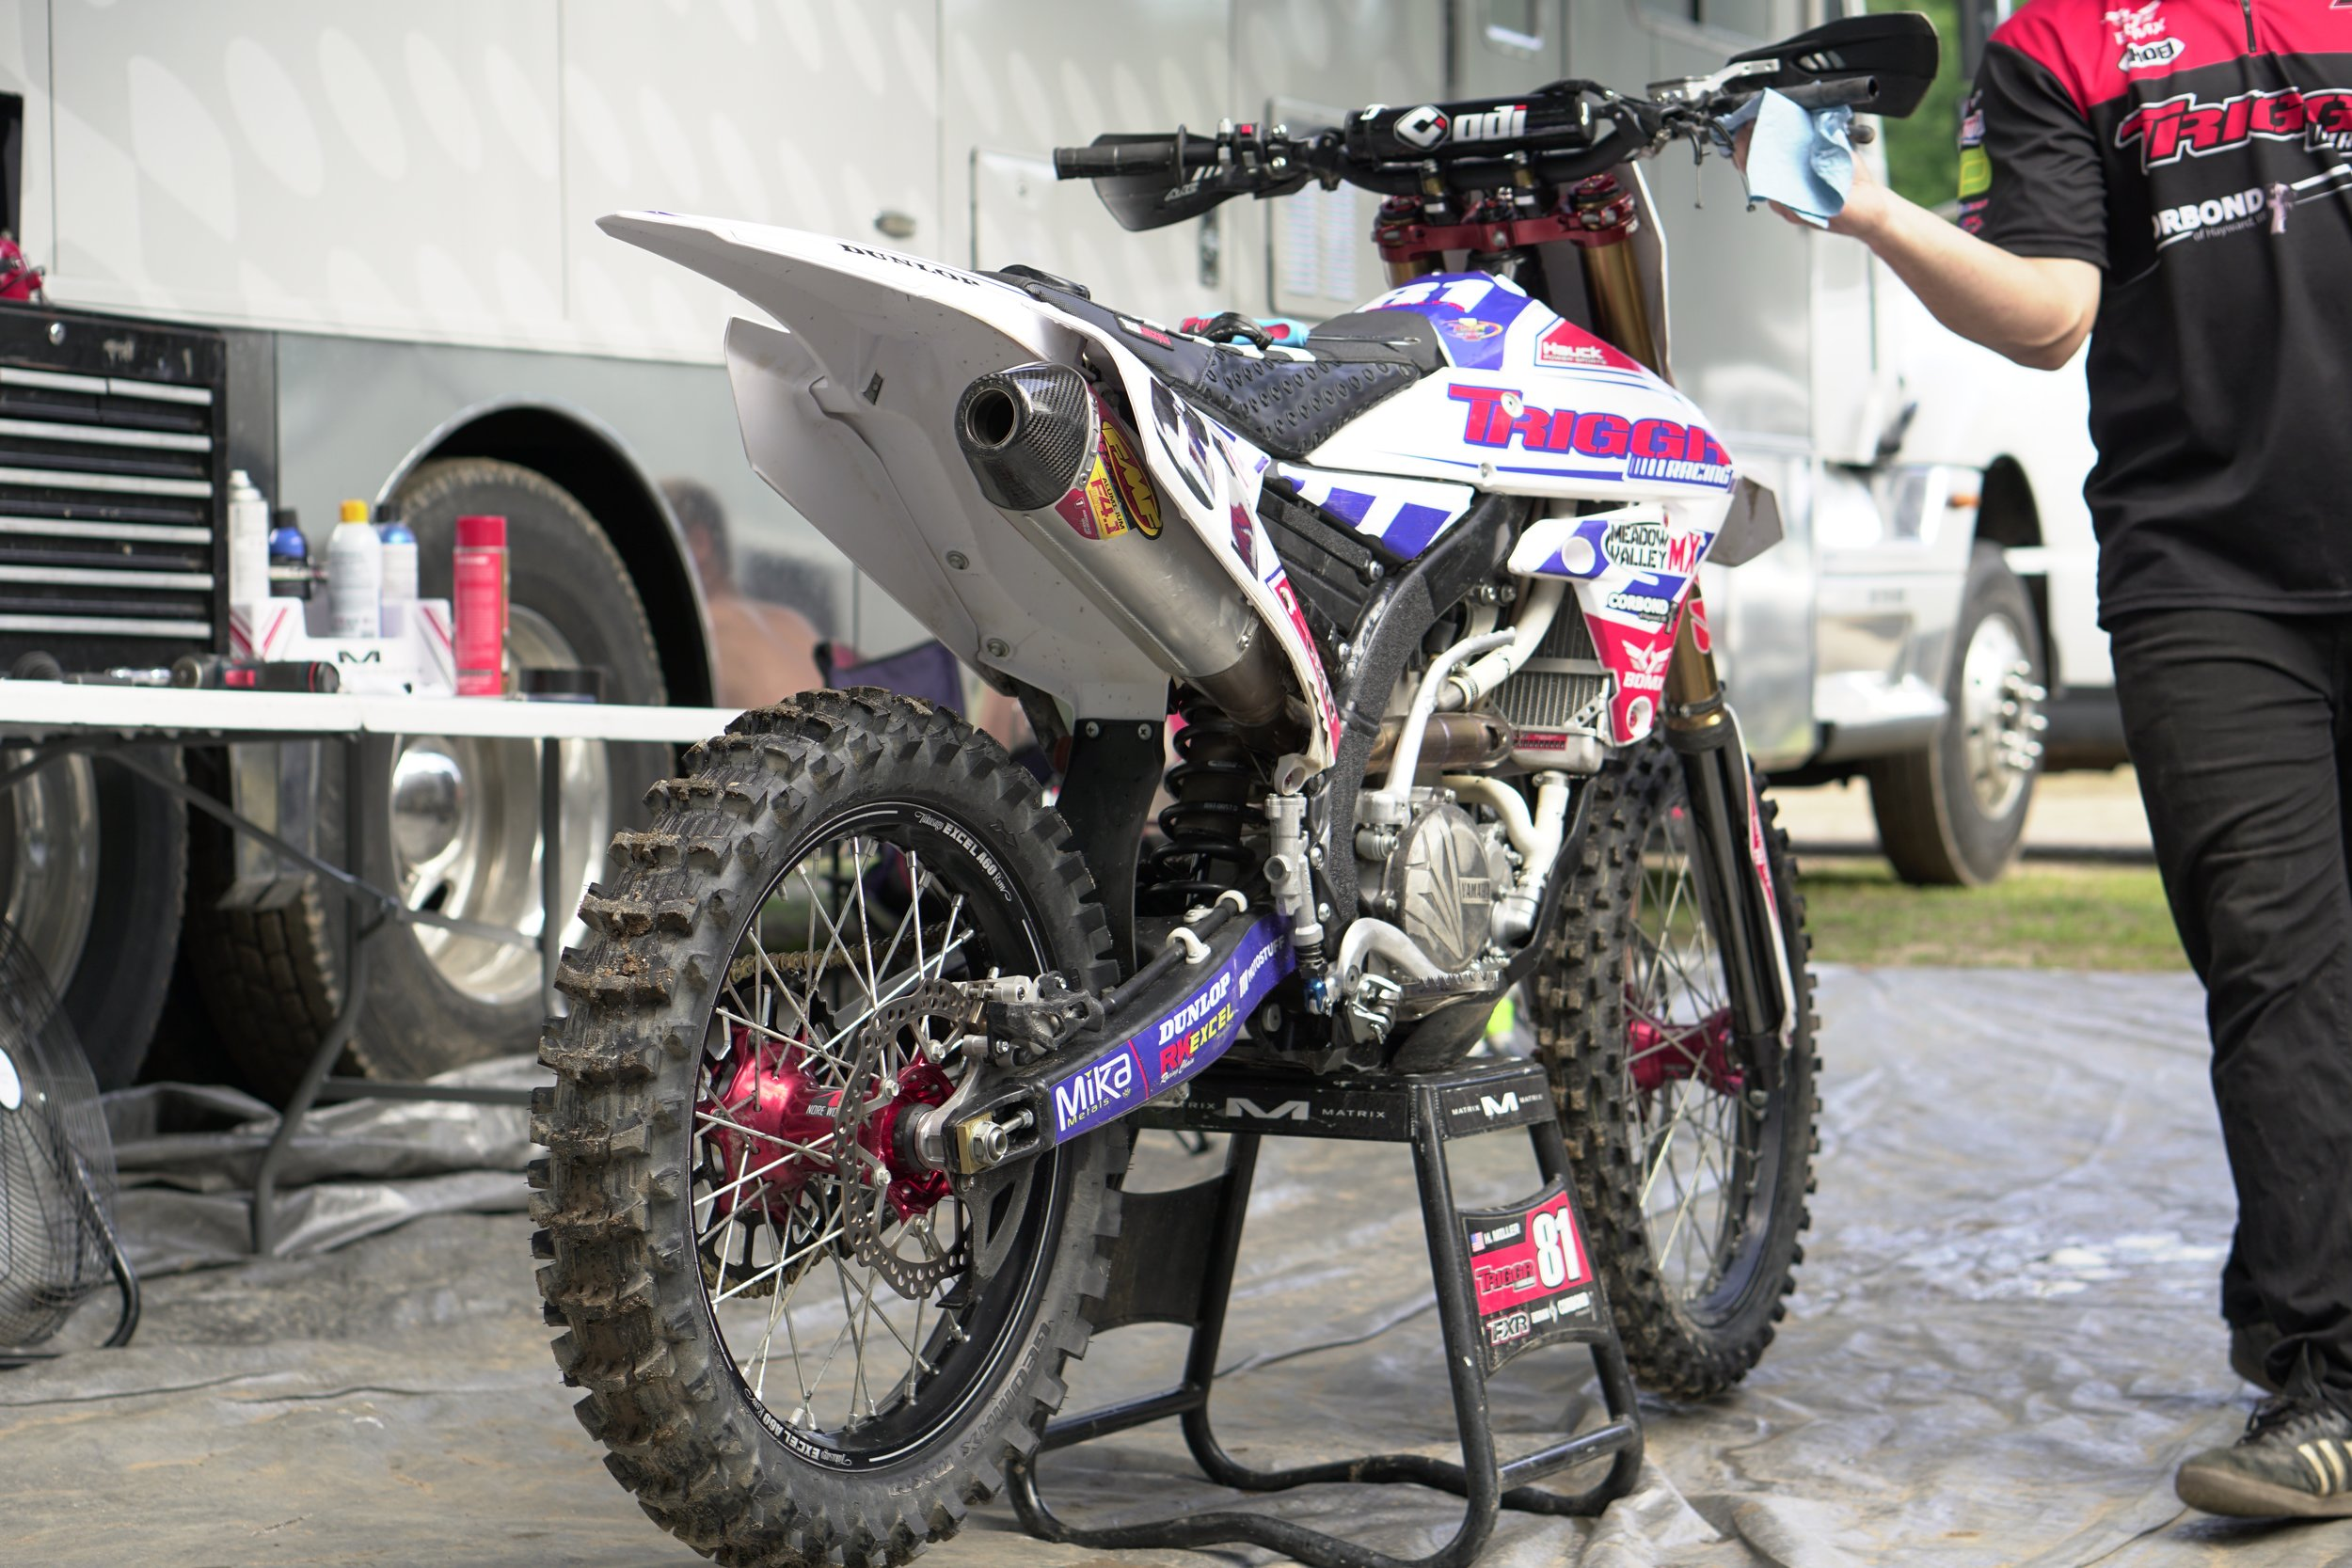 The Triggr Racing YZ450F of Henry Miller is a work of art. Has keeps his bike looking awesome each weekend and is super quick with any changes or repairs that Henry needs. Even without the support of a big factory team these two manage to beat up some big name riders. Its always great to see privateer teams achieving high levels of success each week. Here Chas makes some quick adjustments to deal with the torturous Southwick sand while Henry and him discuss the track and their approach to the day.